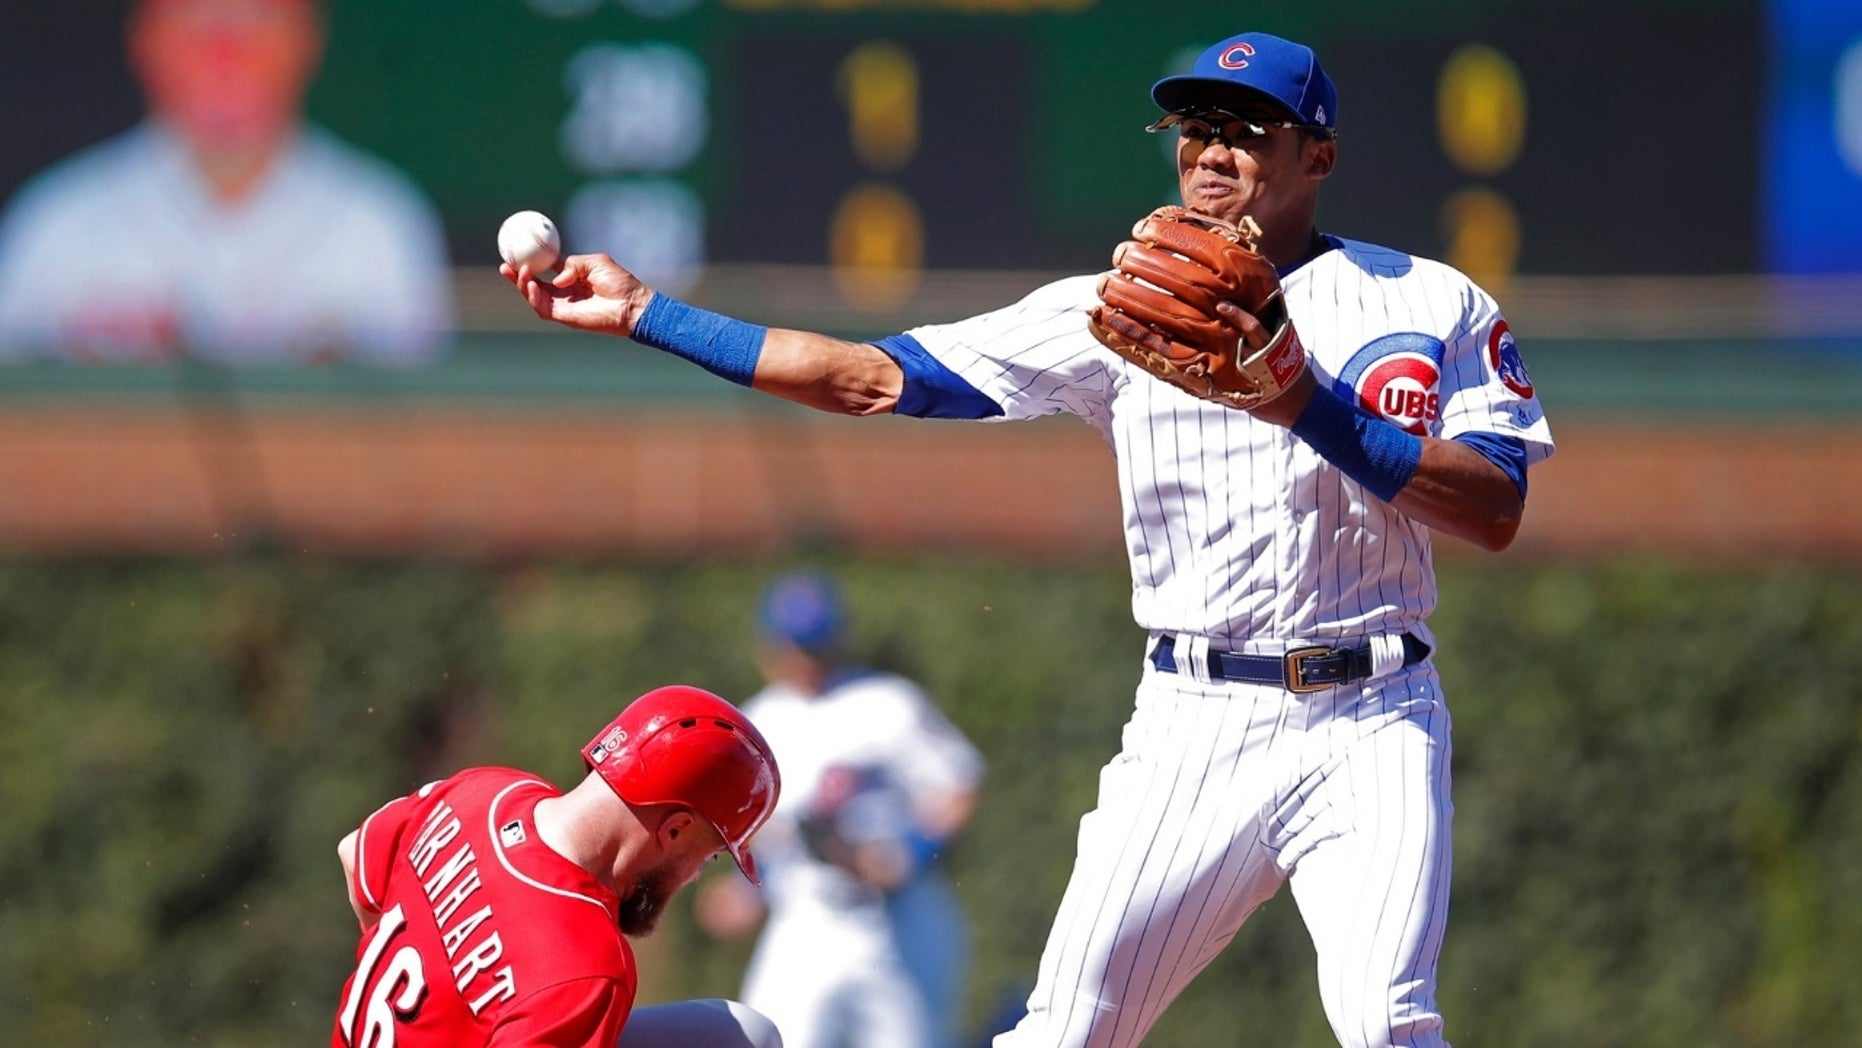 Chicago Cubs shortstop Addison Russell [right] was placed on administrative leave Friday following fresh allegations of domestic violence from his ex-wife.